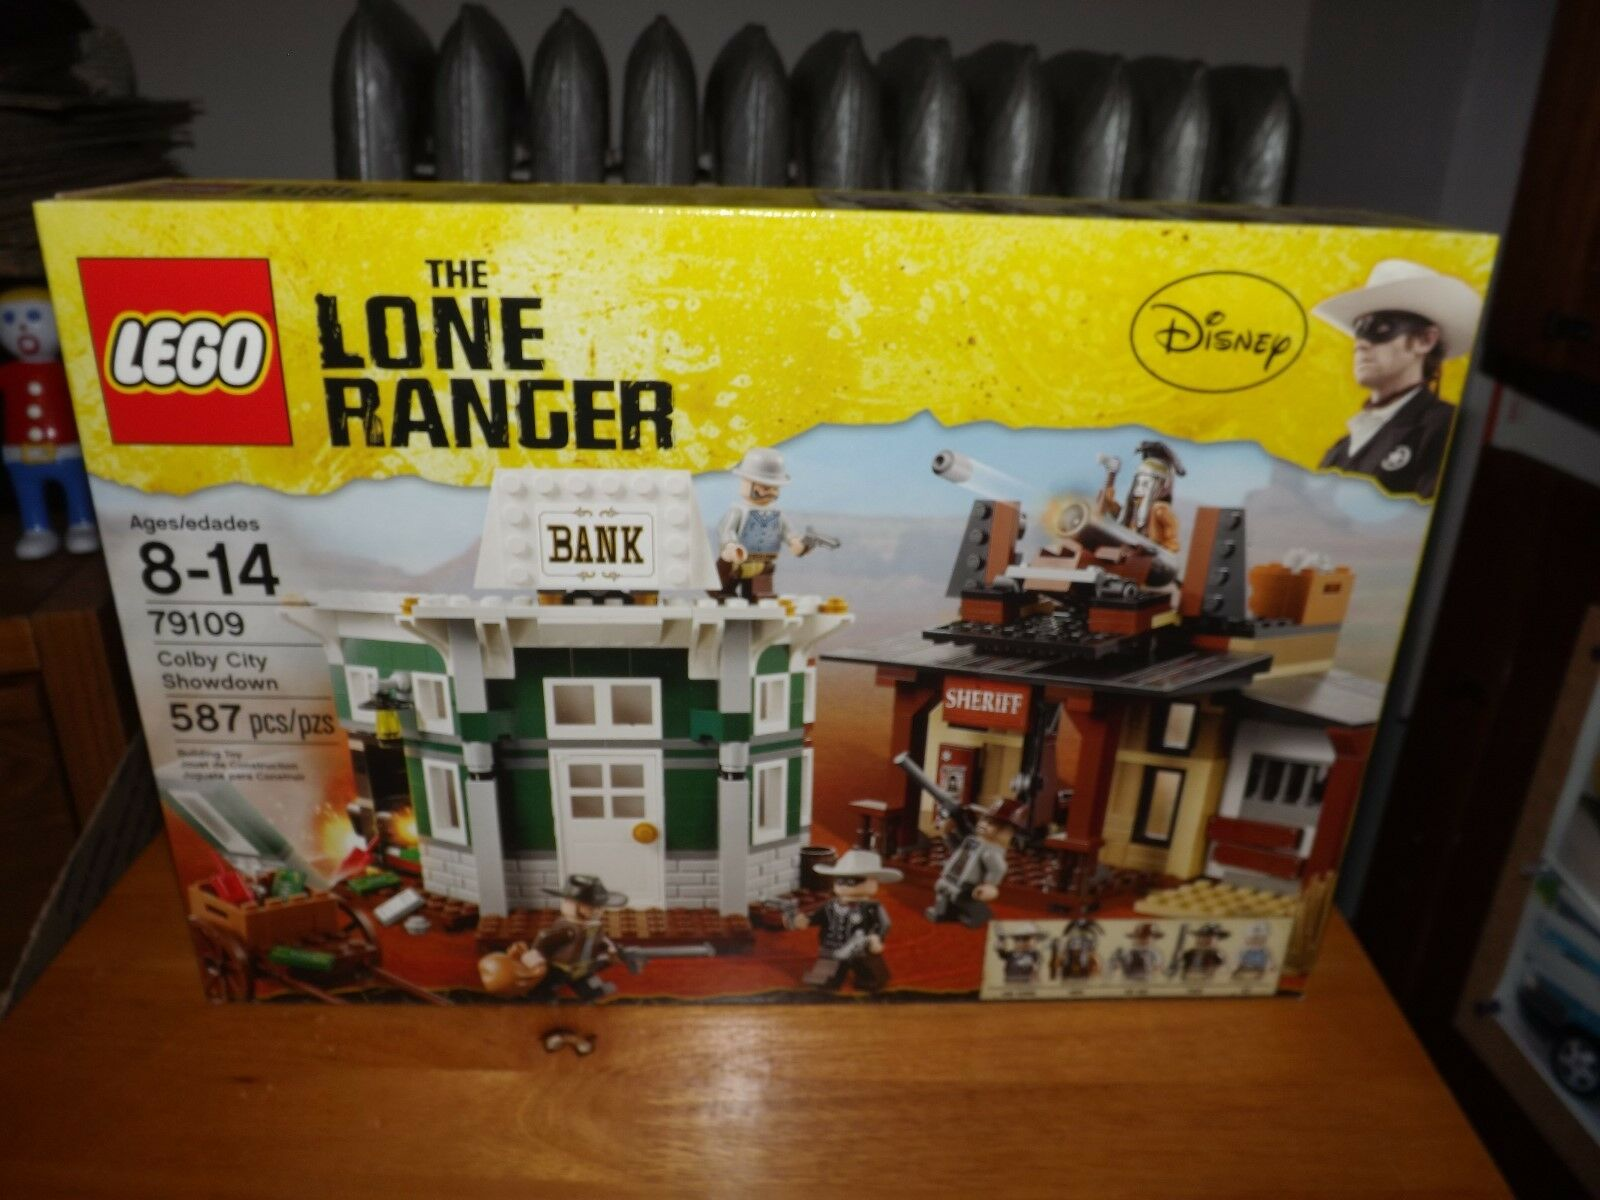 LEGO, THE LONE RANGER, COLBY CITY SHOWDOWN, KIT PIECES, NIB